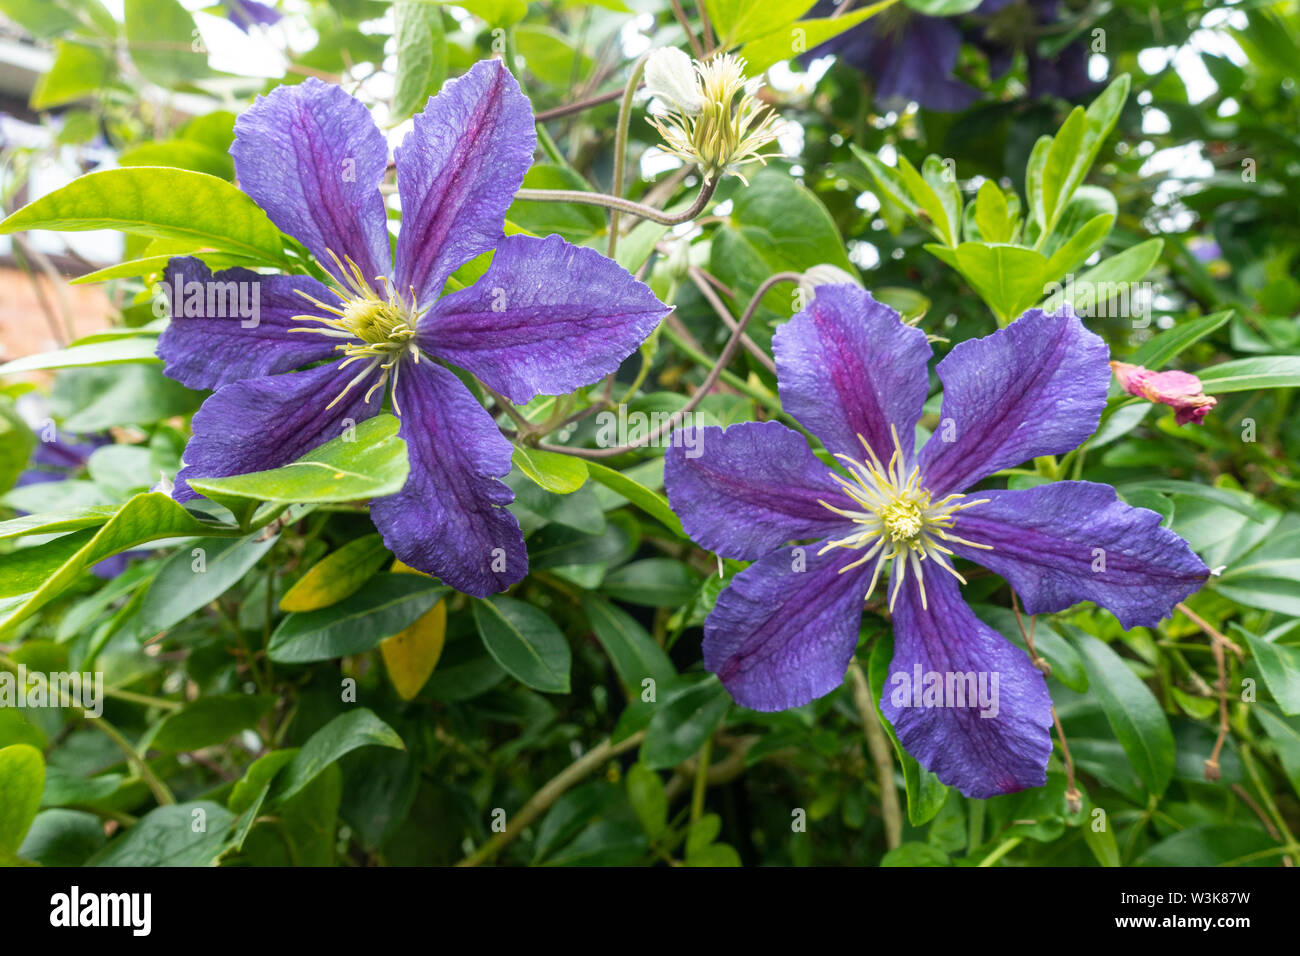 Close up view of purple clematis flowers. Stock Photo